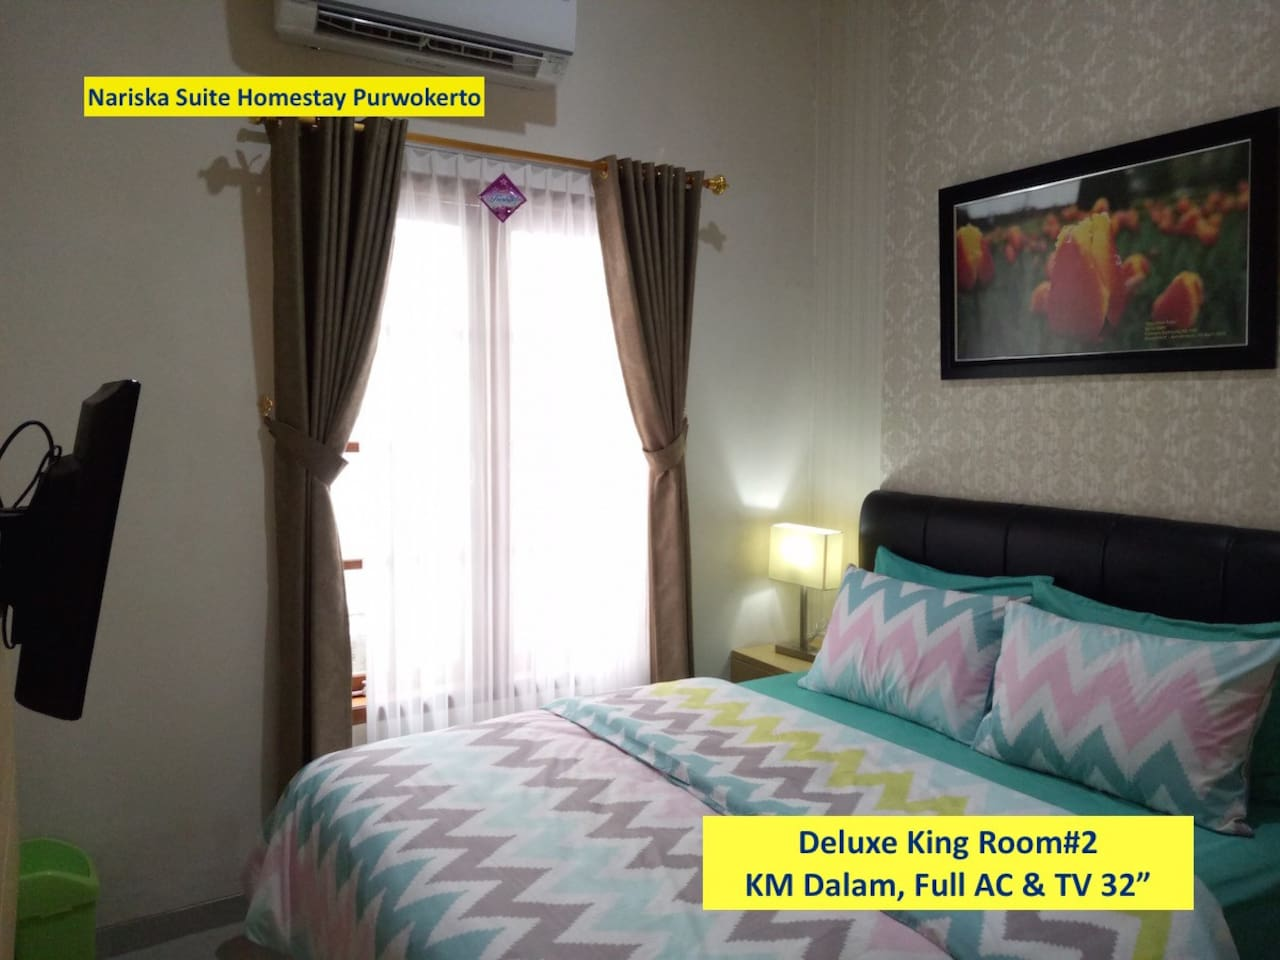 Deluxe King Room#2, Full AC and TV 32""